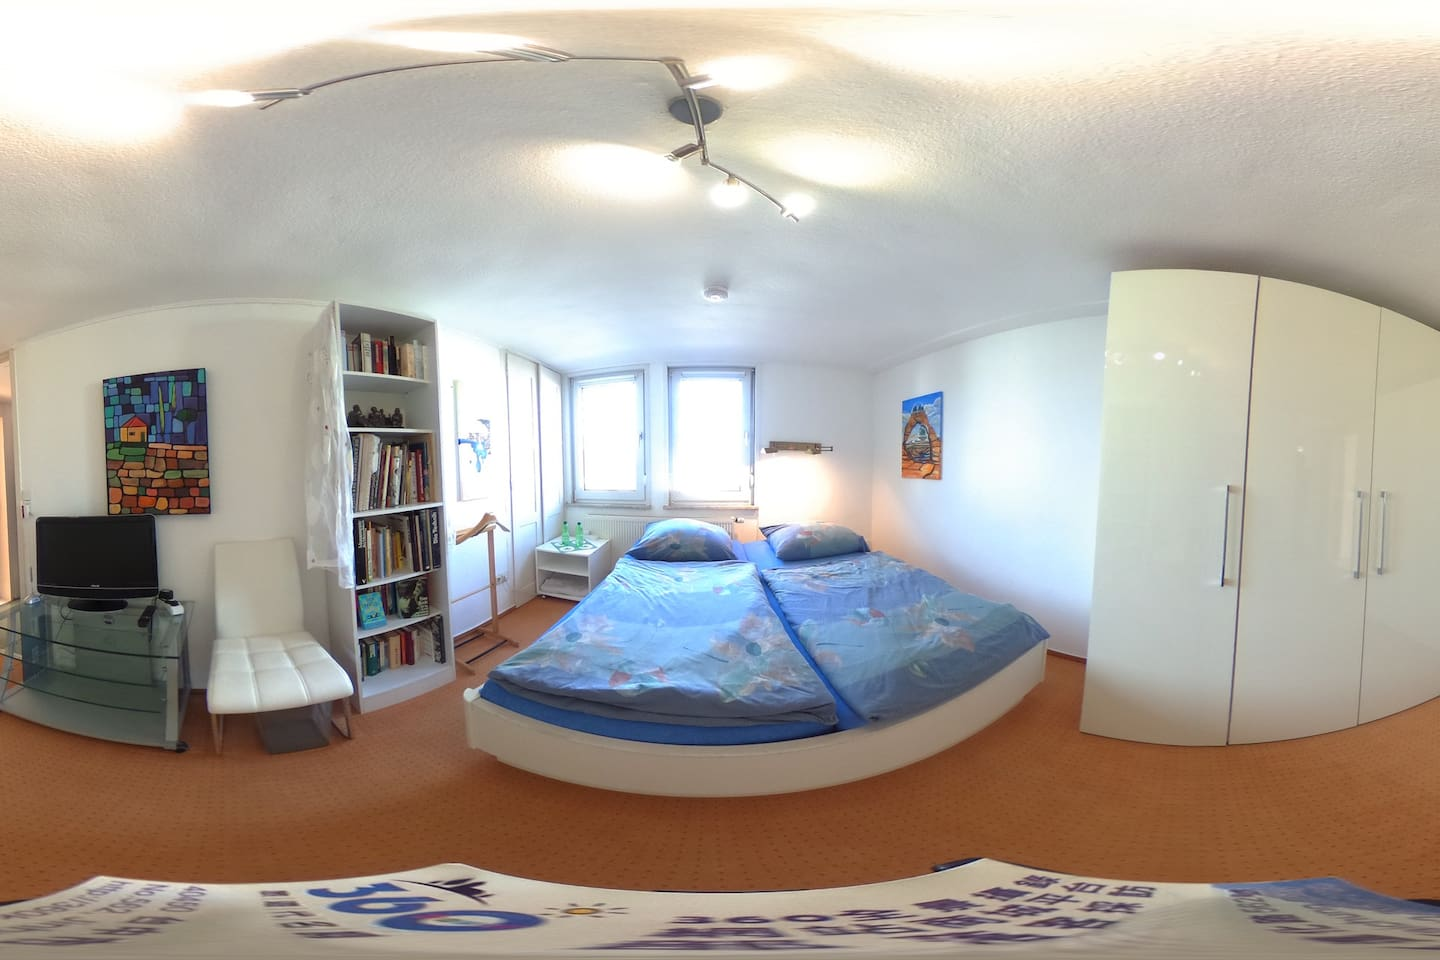 Room Niki, Super-king-size double bed (183 x 200), 2 persons, first floor and mountain view